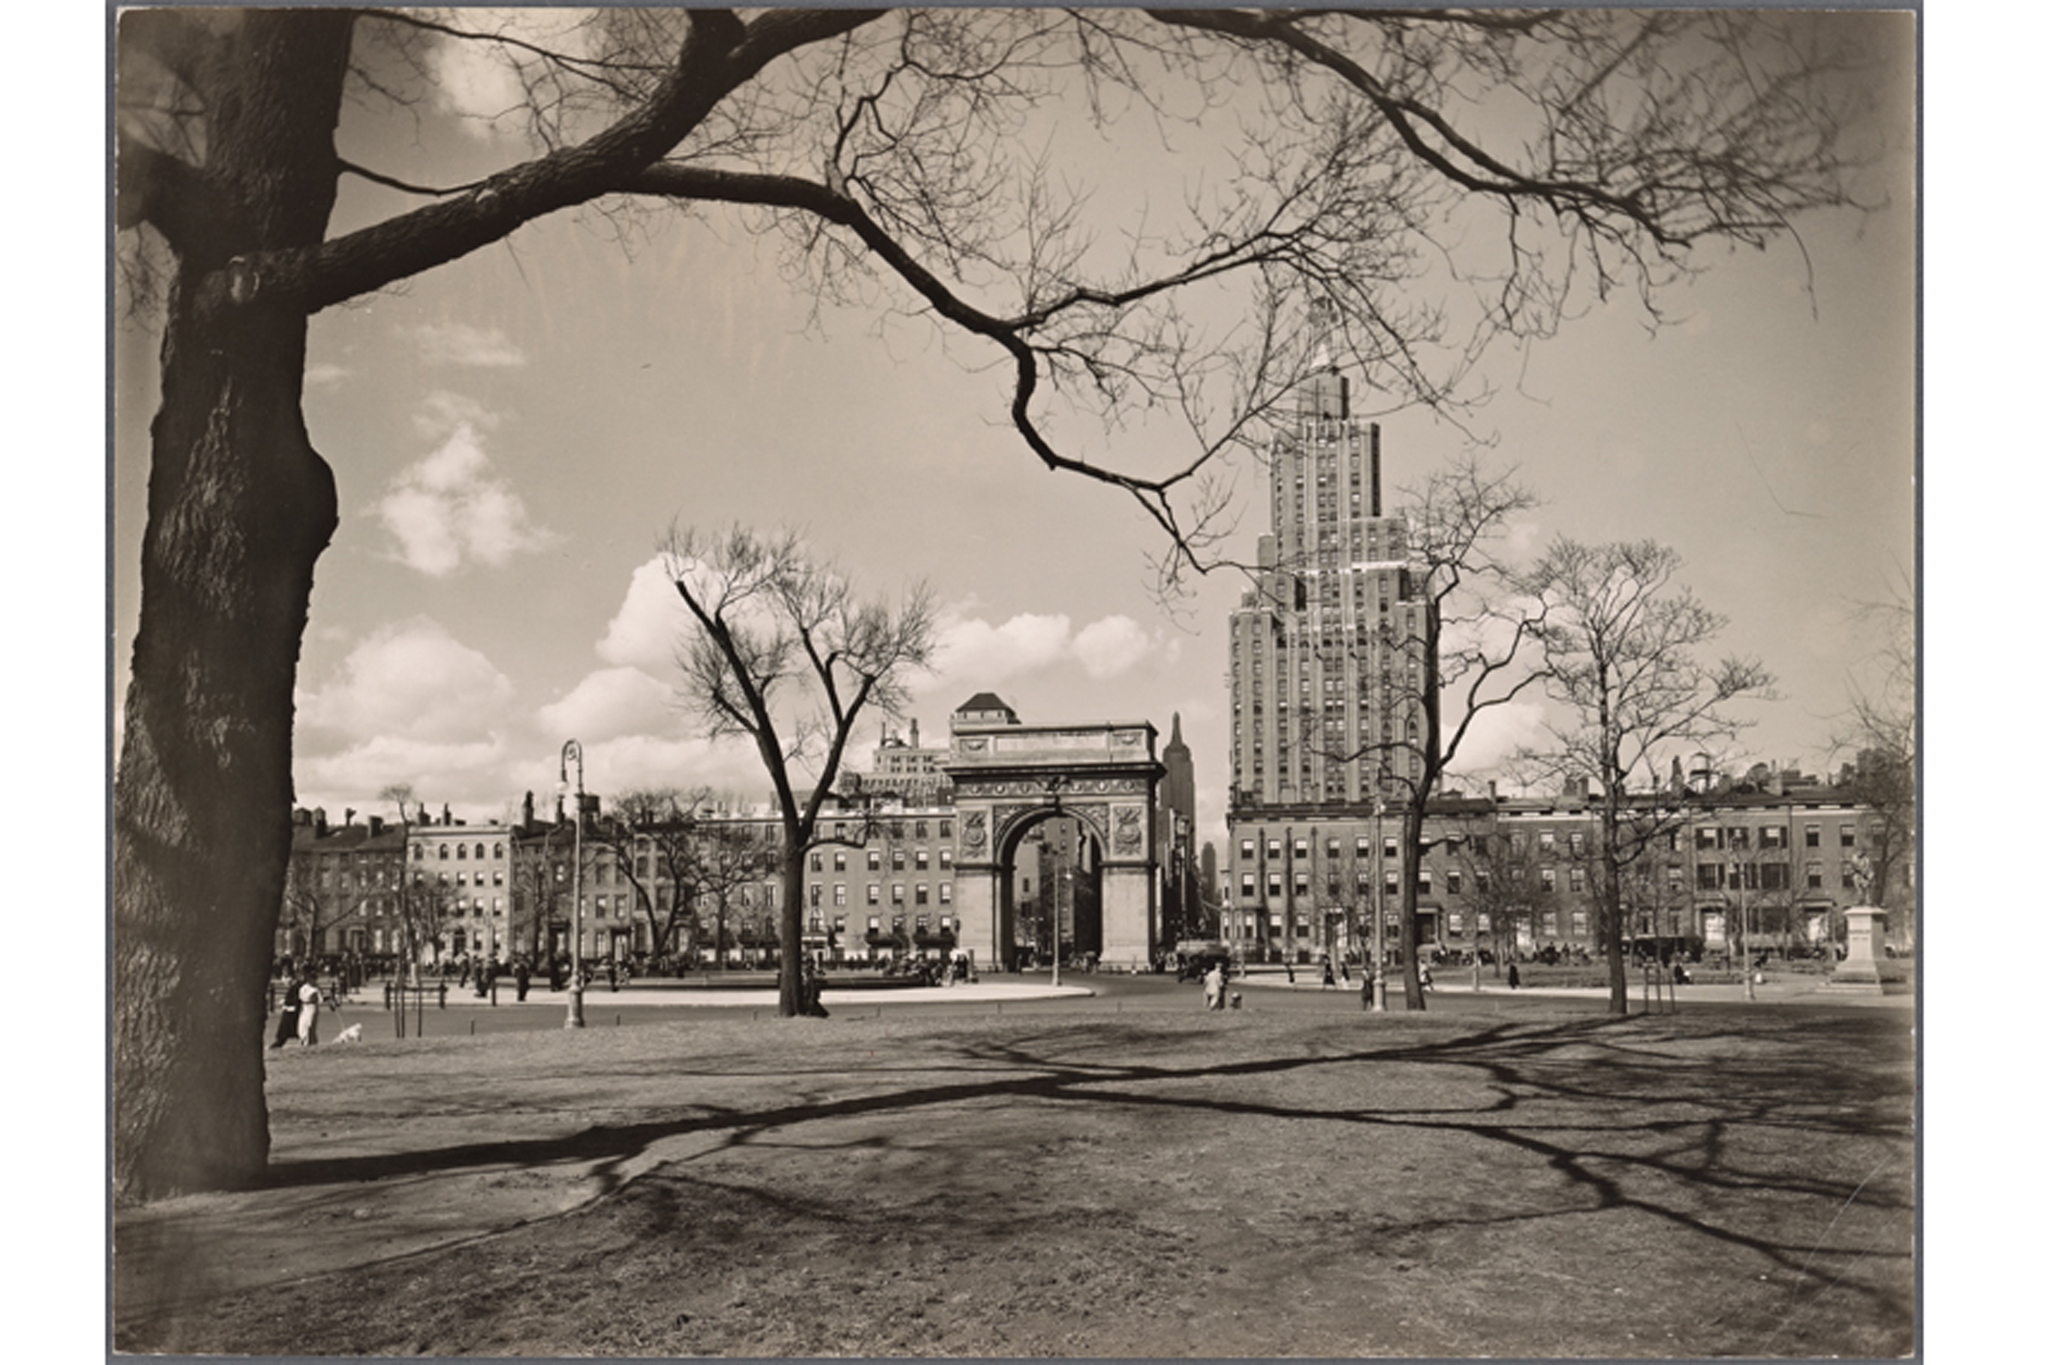 Washington Square Park, 1936